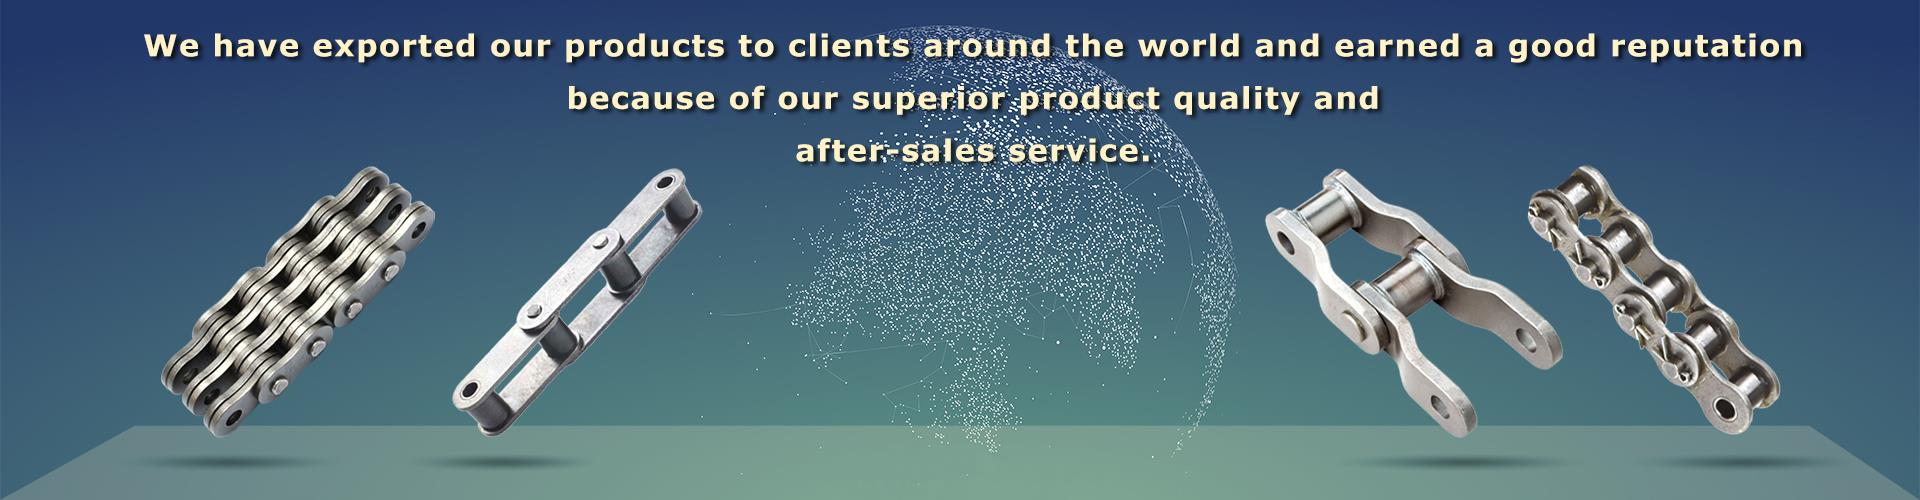 CNC  made in China - replacement parts -  in Jalandhar India  Turning & Drawing Solid Plastic POM Derlin Pulley Gear   Sprocket Gear   Split Gear with ce certificate top quality low price